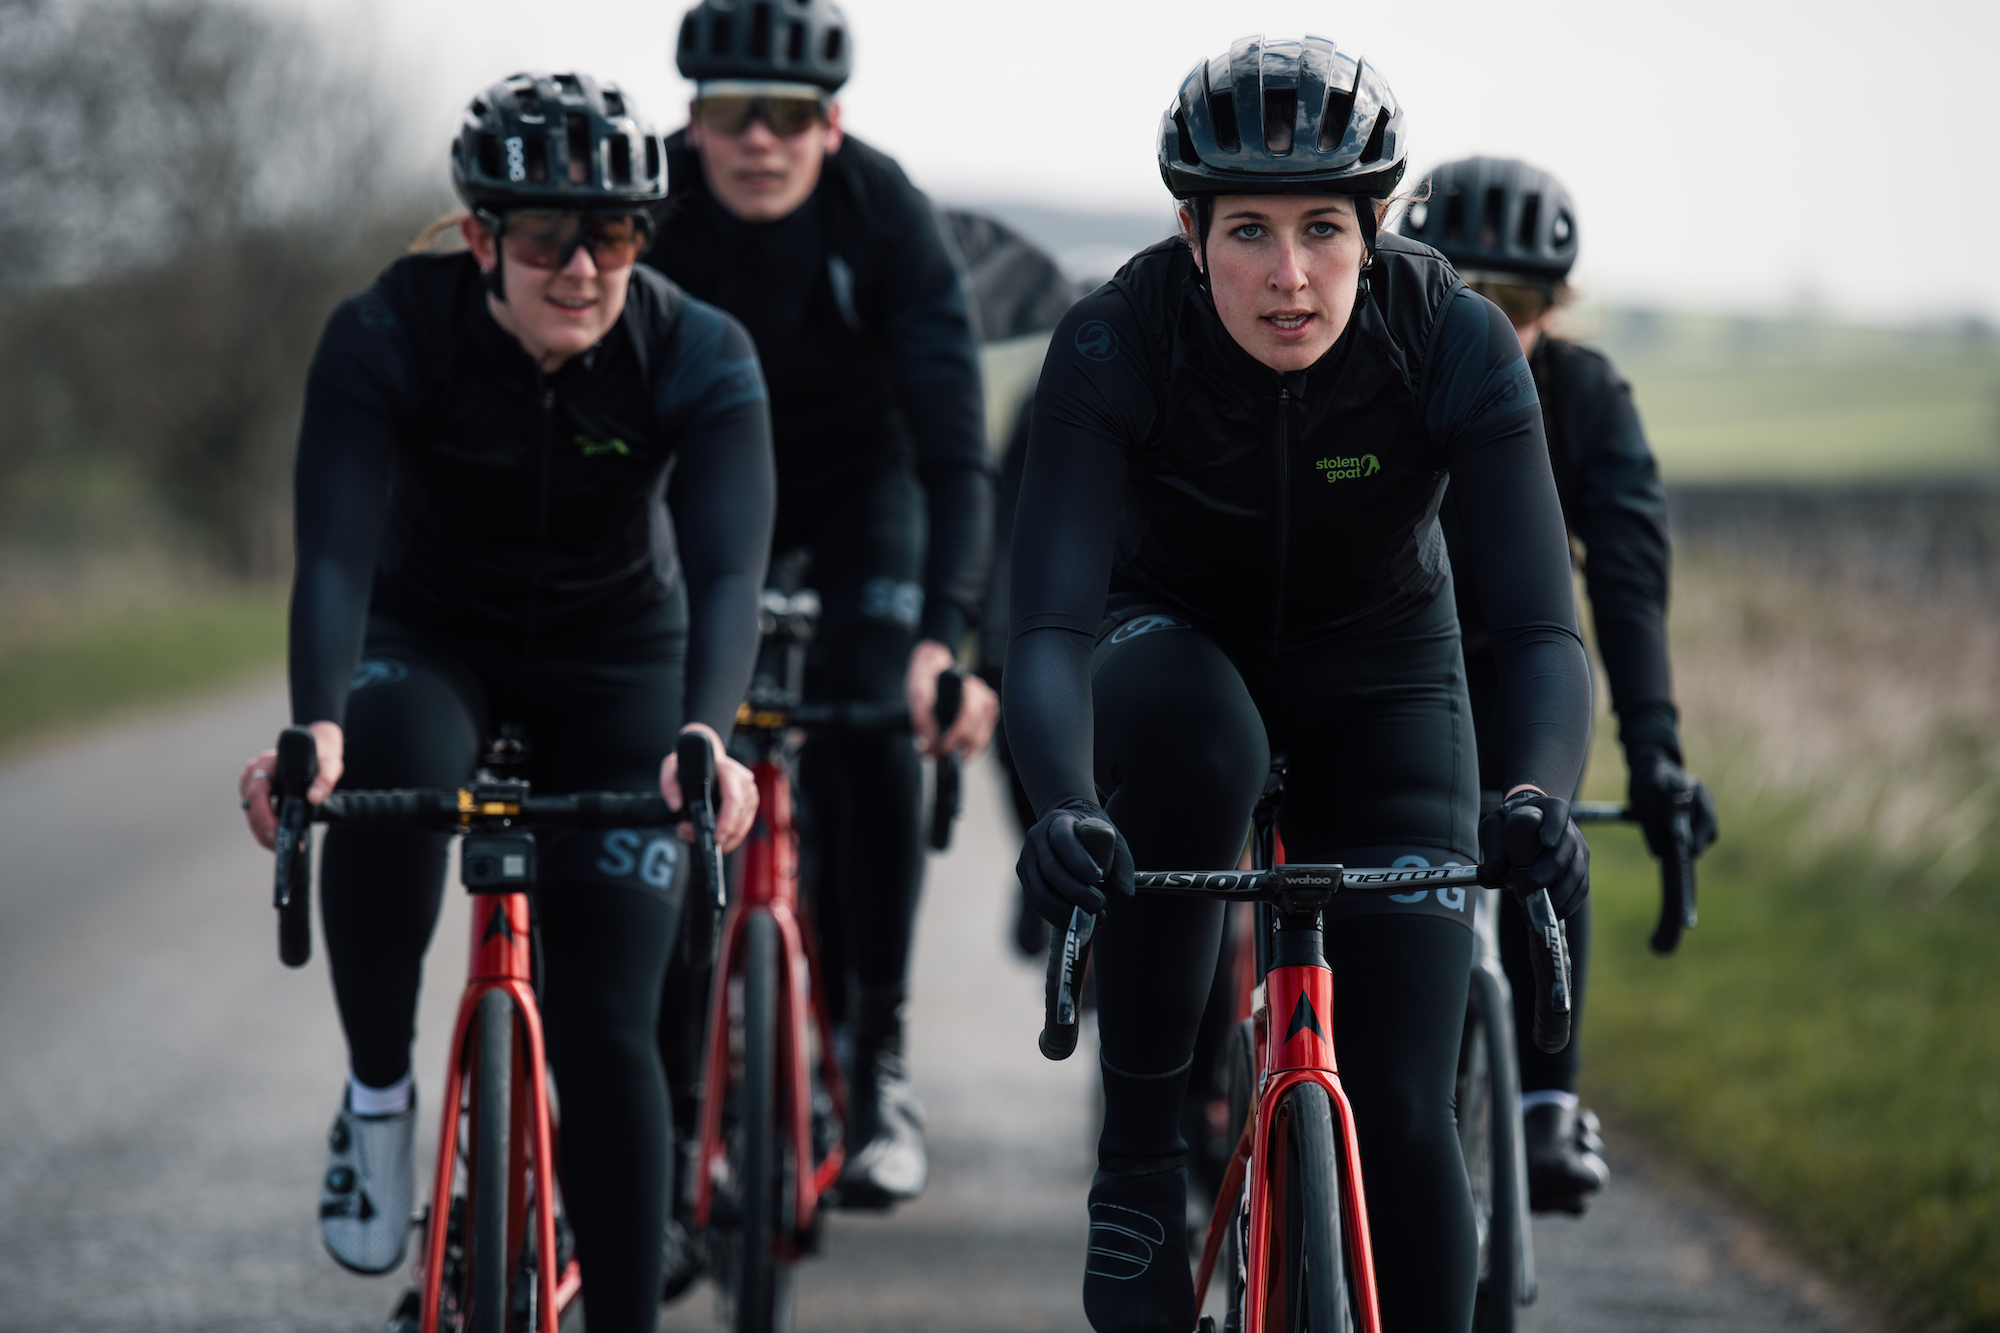 New British racing team with major sponsors launches, supporting riders tocompete across disciplines